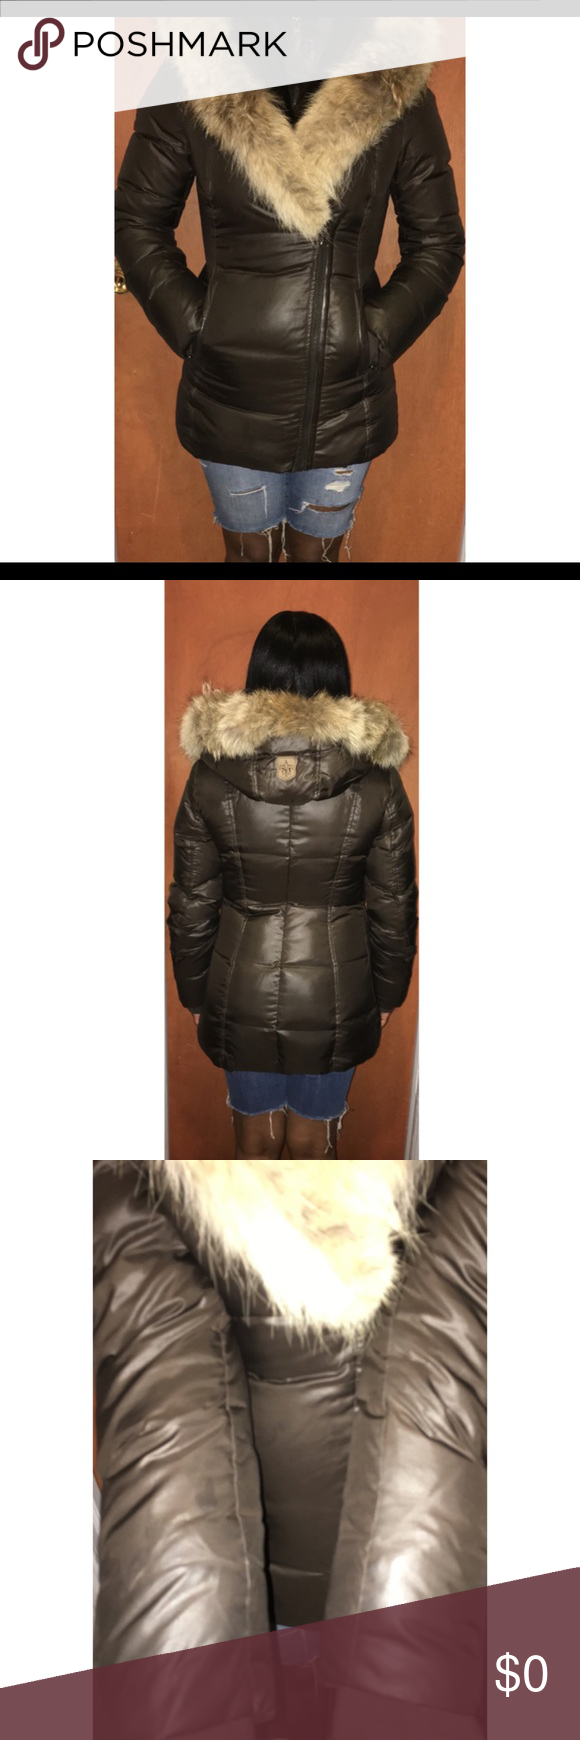 ‼️SOLD‼️ADDITIONAL MACKAGE PICS ⛔️-I DON'T TRADE‼️-  this listing is to show the fit and the condition I'm 5 feet and this coat covers my behind.. Small stain /dirt under the sleeve  cannot be seen when worn Mackage Jackets & Coats